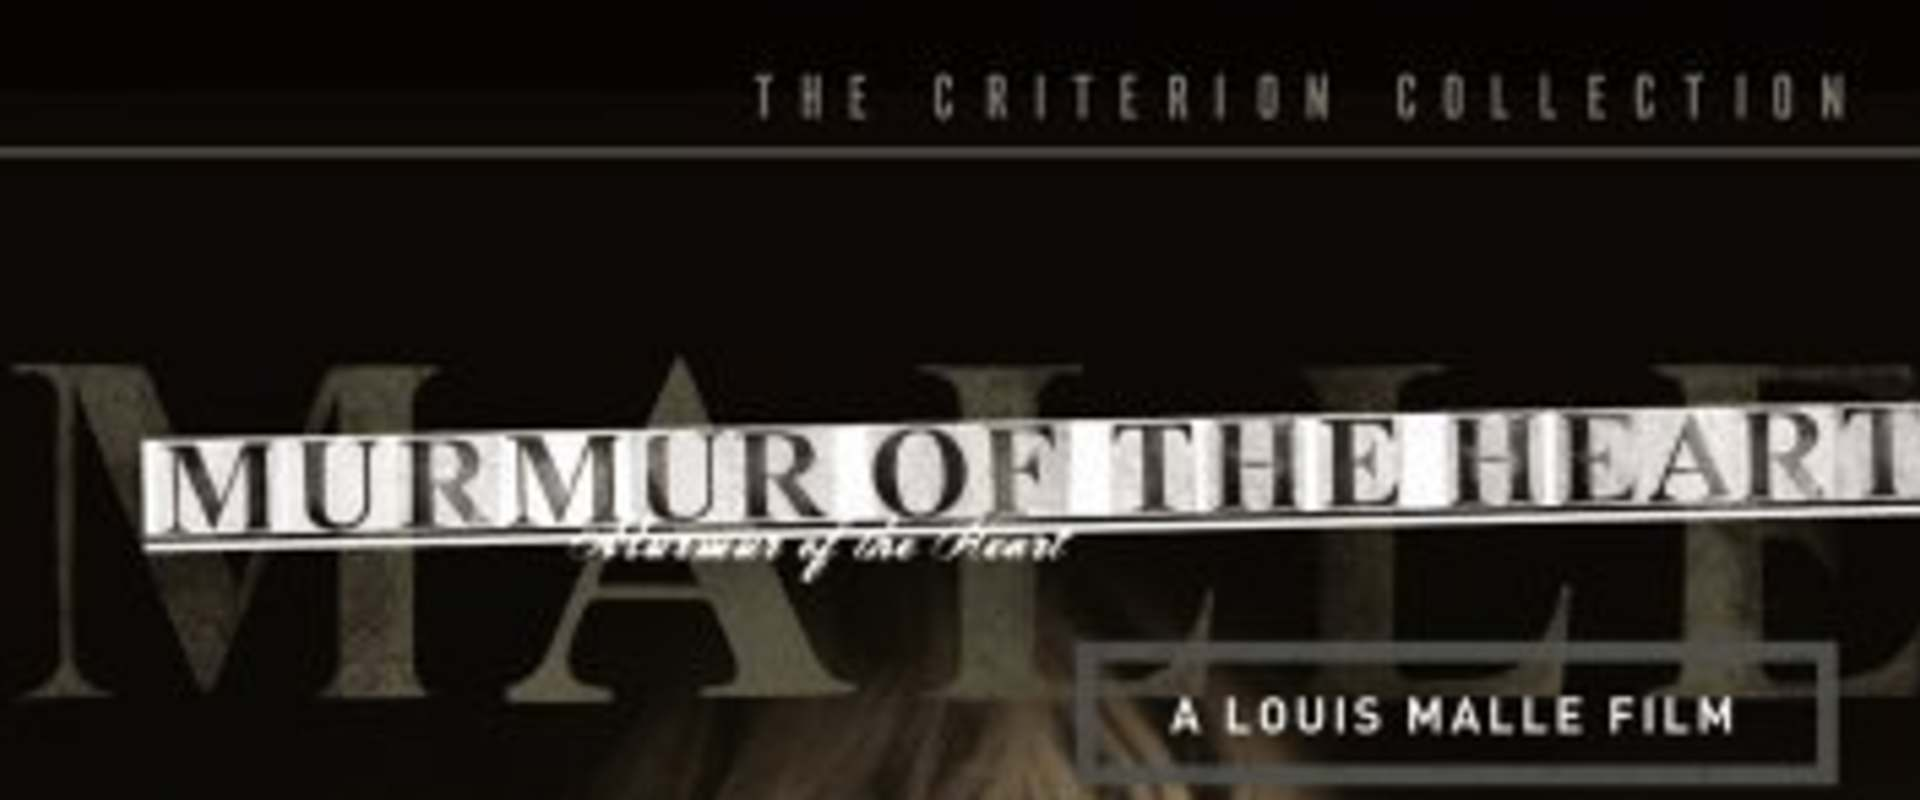 Murmur of the Heart background 1